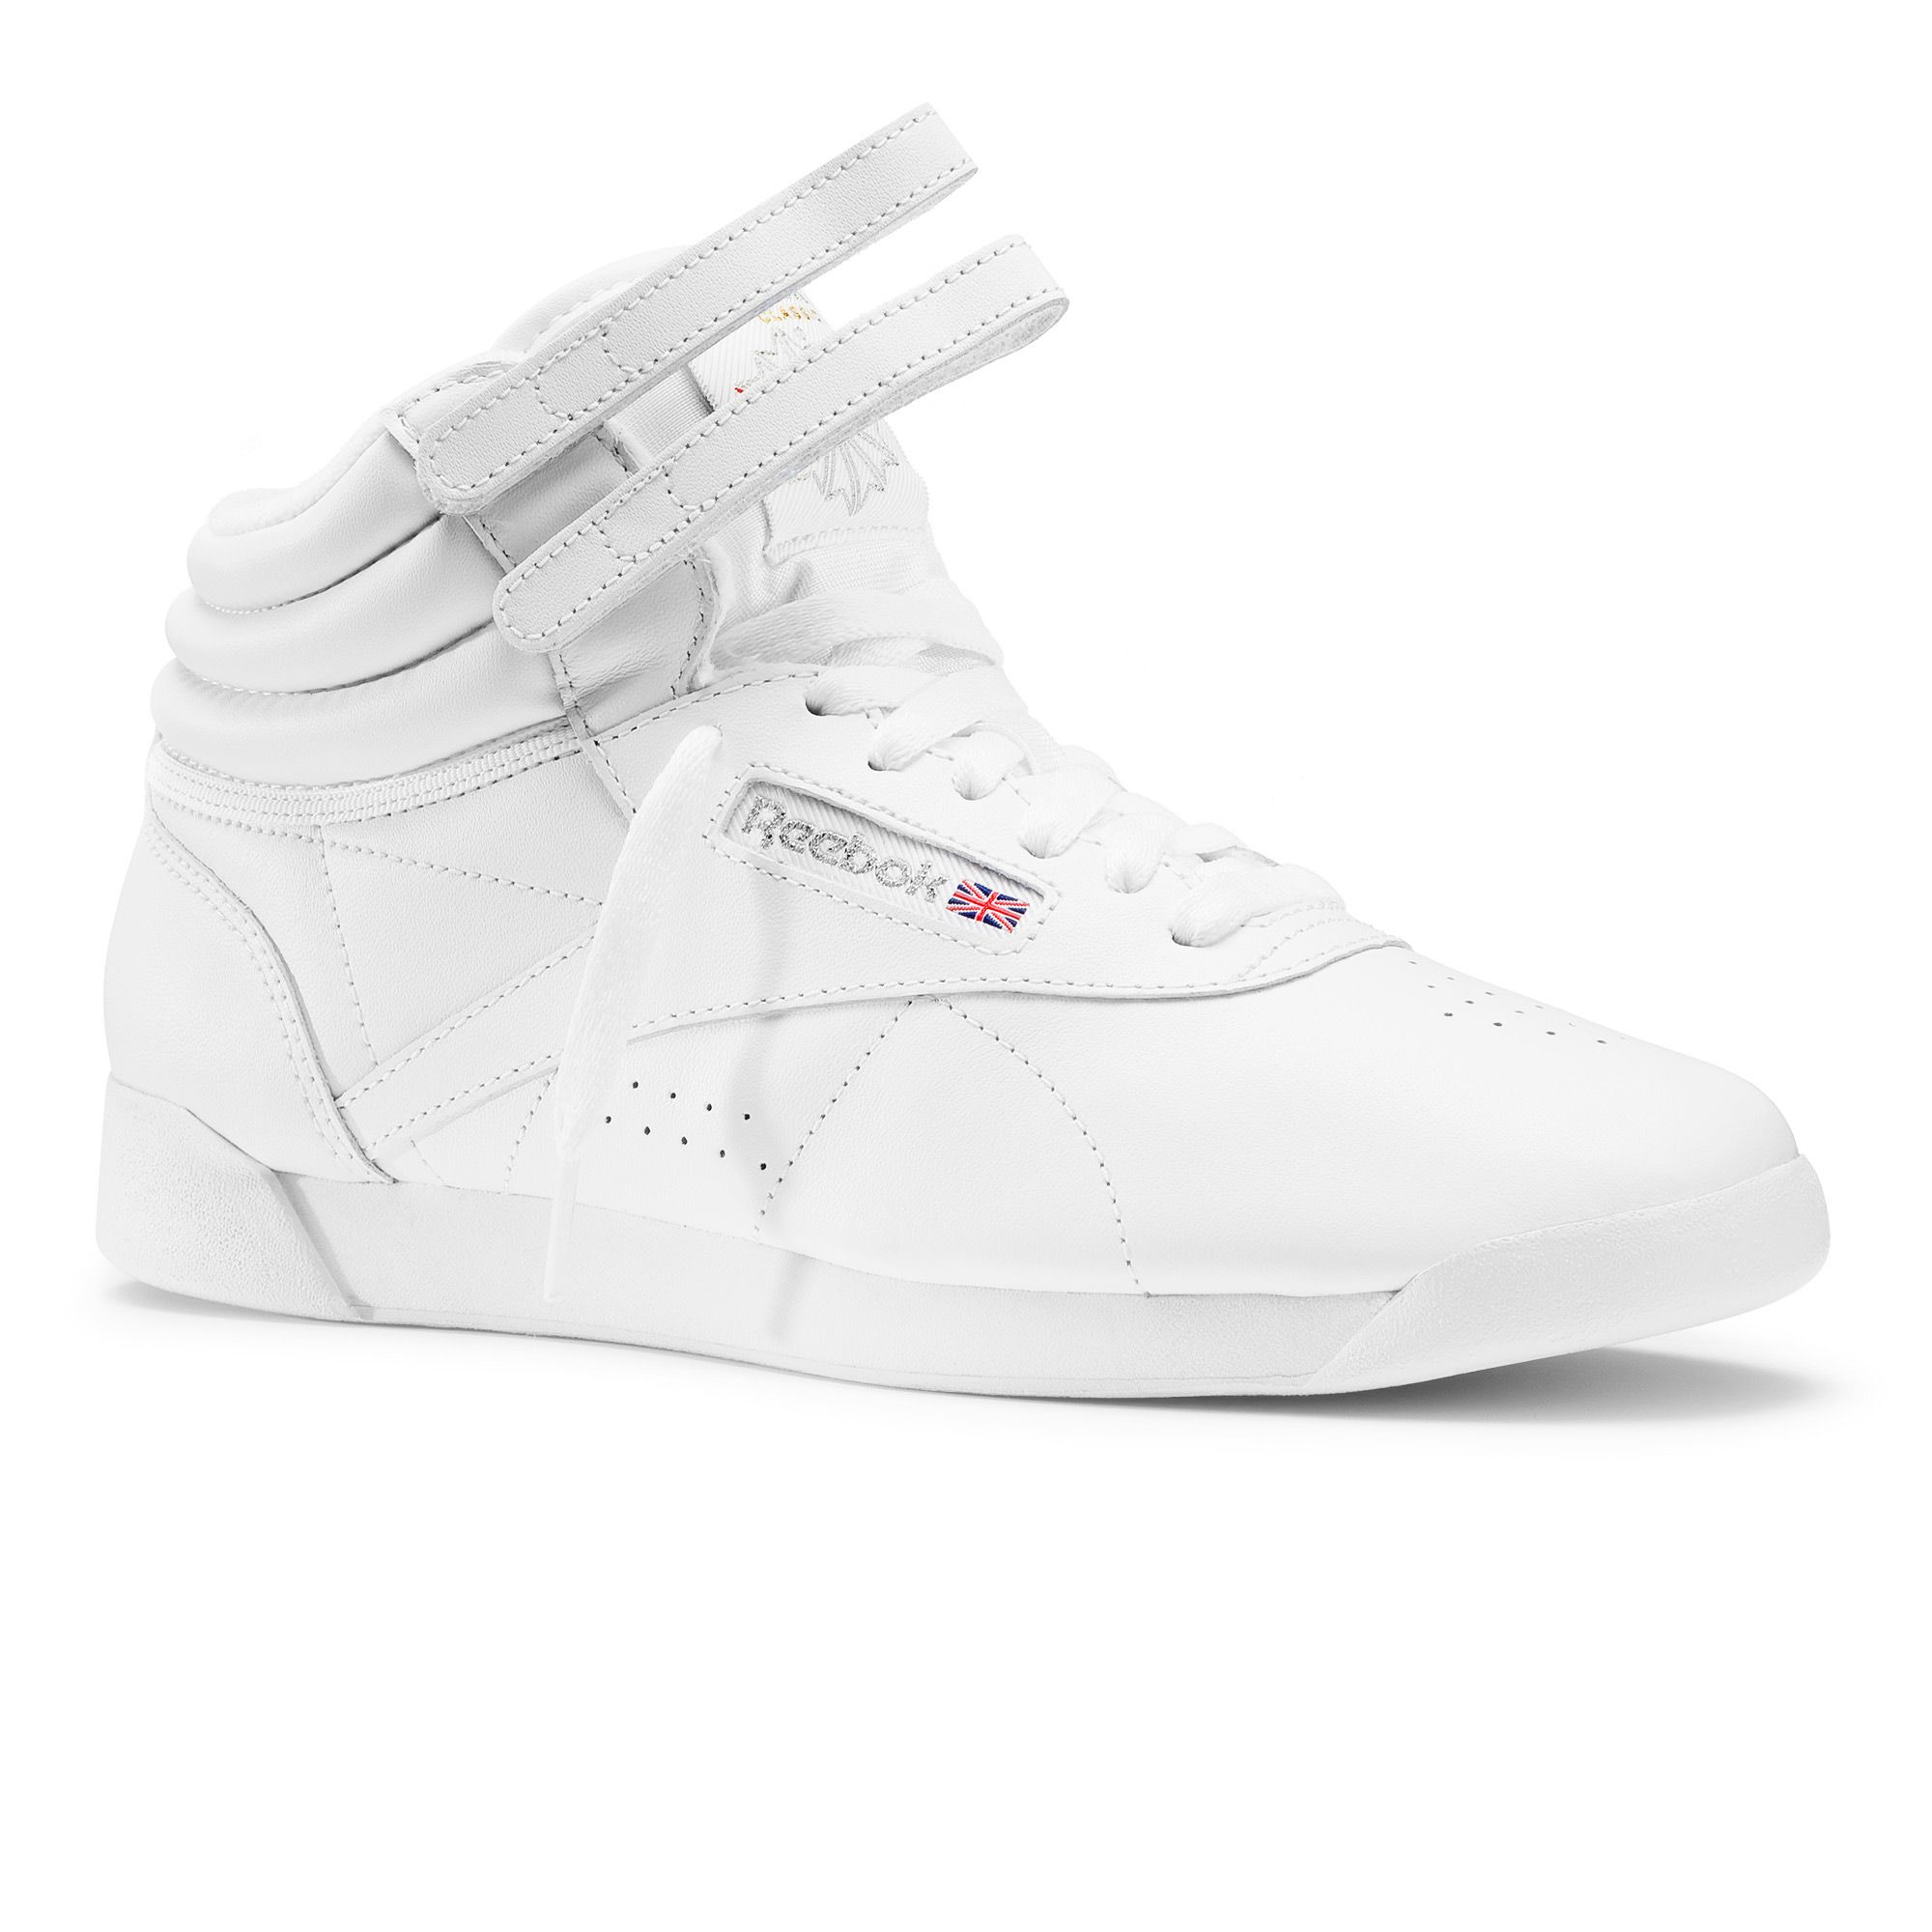 Reebok-running-shoes-and-sportsshoes-for-women (1)